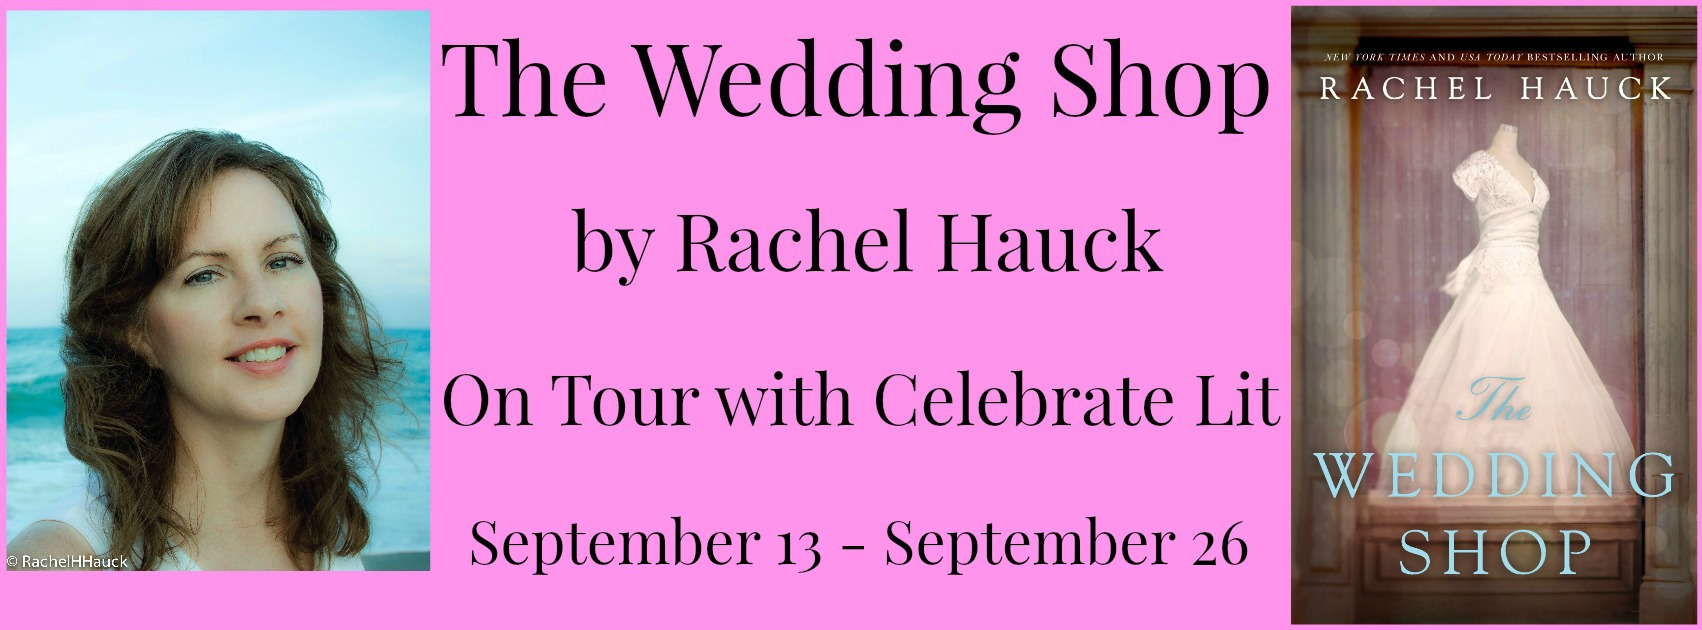 Rachele hauck wedding